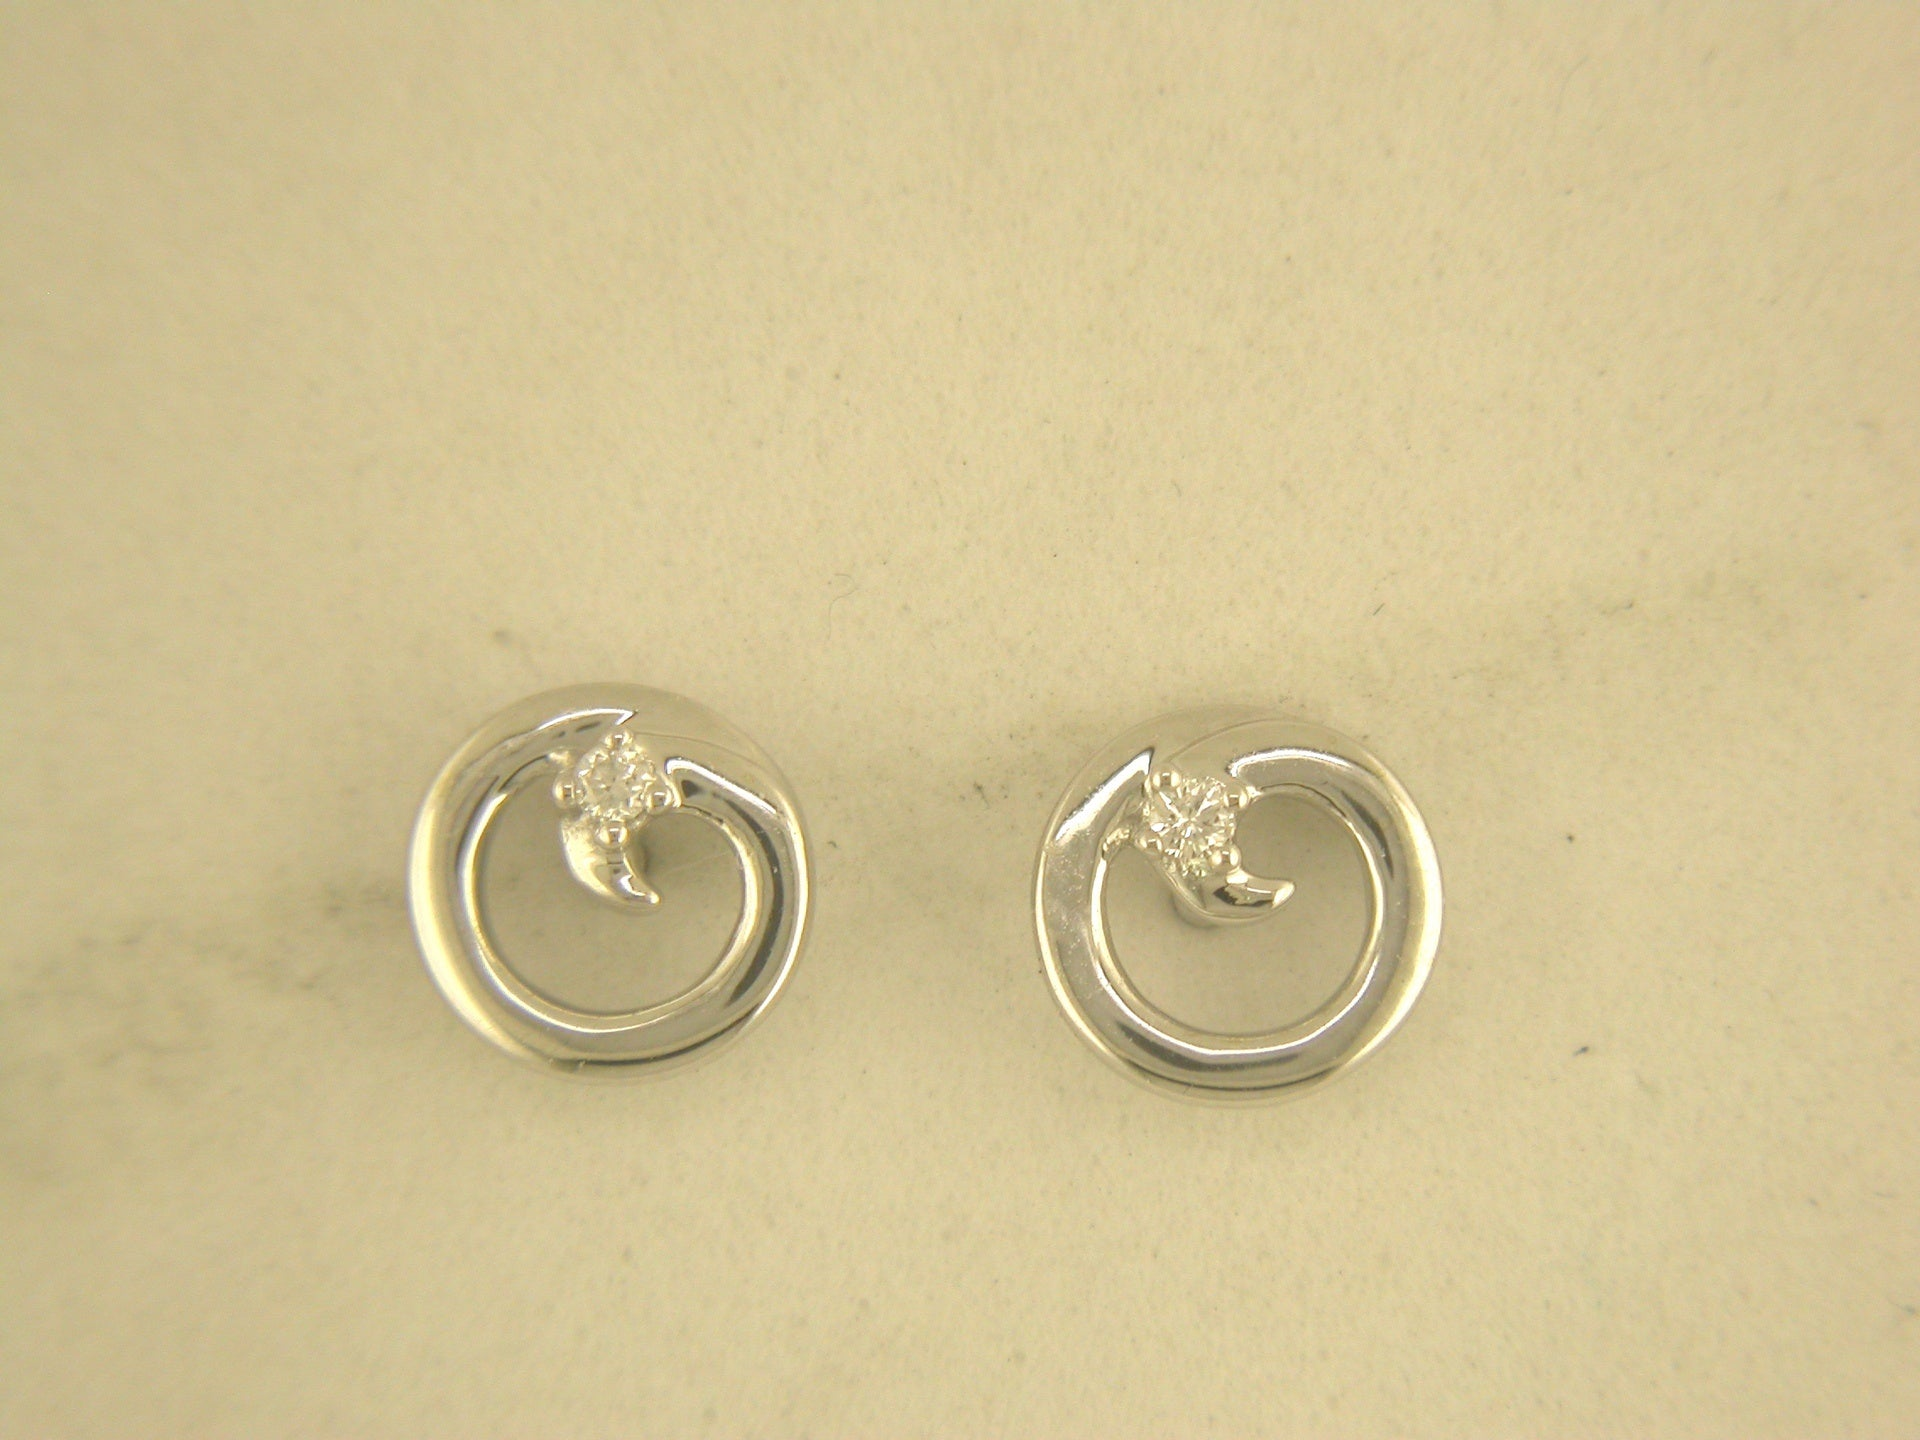 9CT WHITE GOLD SWIRL EARRINGS 0.03CTS